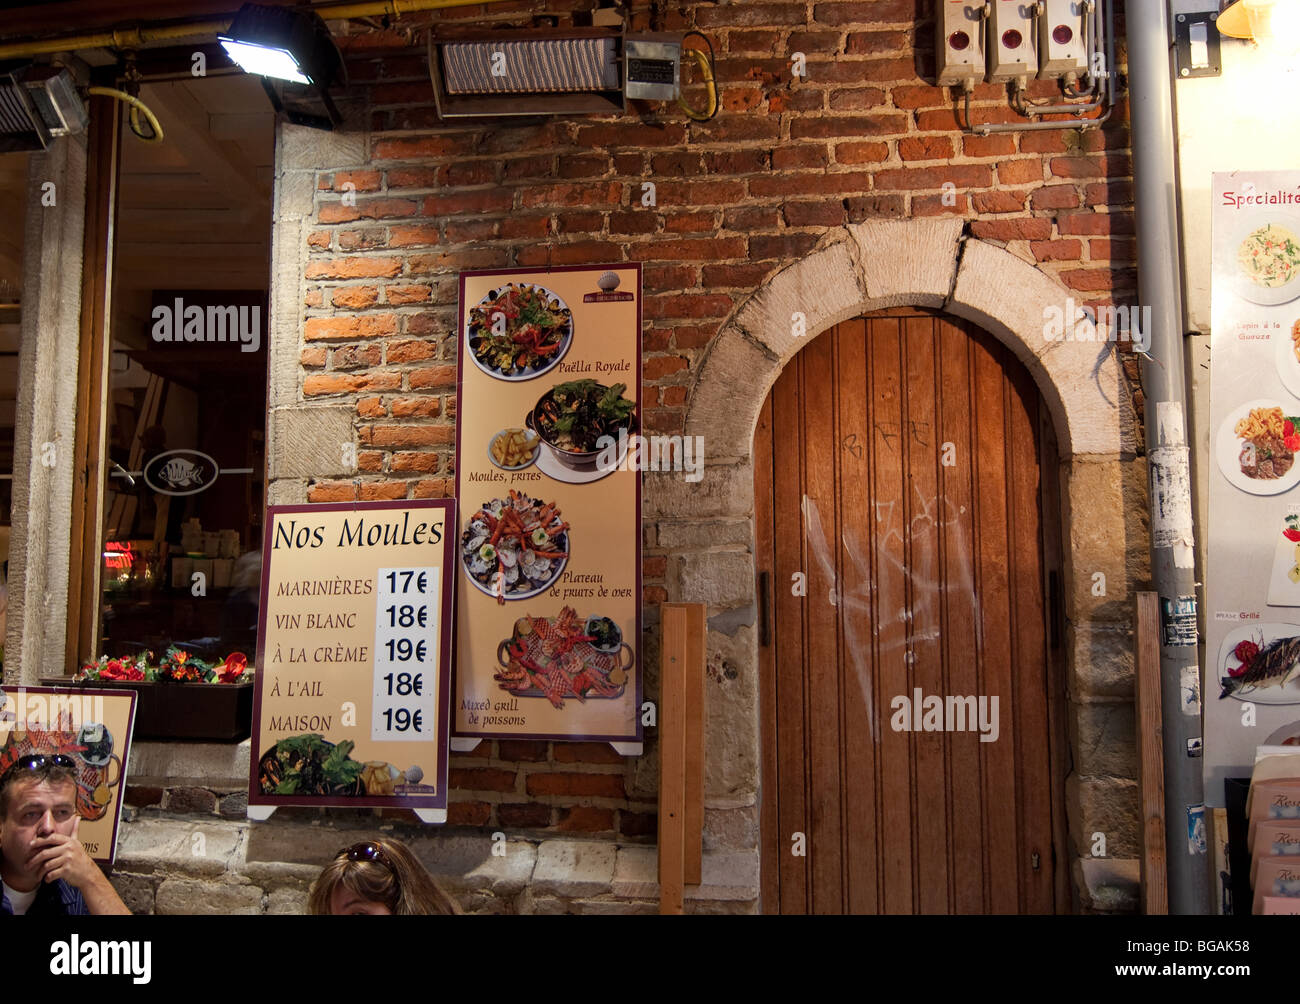 Entrance door at the café in Brussels - Stock Image  sc 1 st  Alamy & Entrance Door With Window Into Café Stock Photos u0026 Entrance Door ...